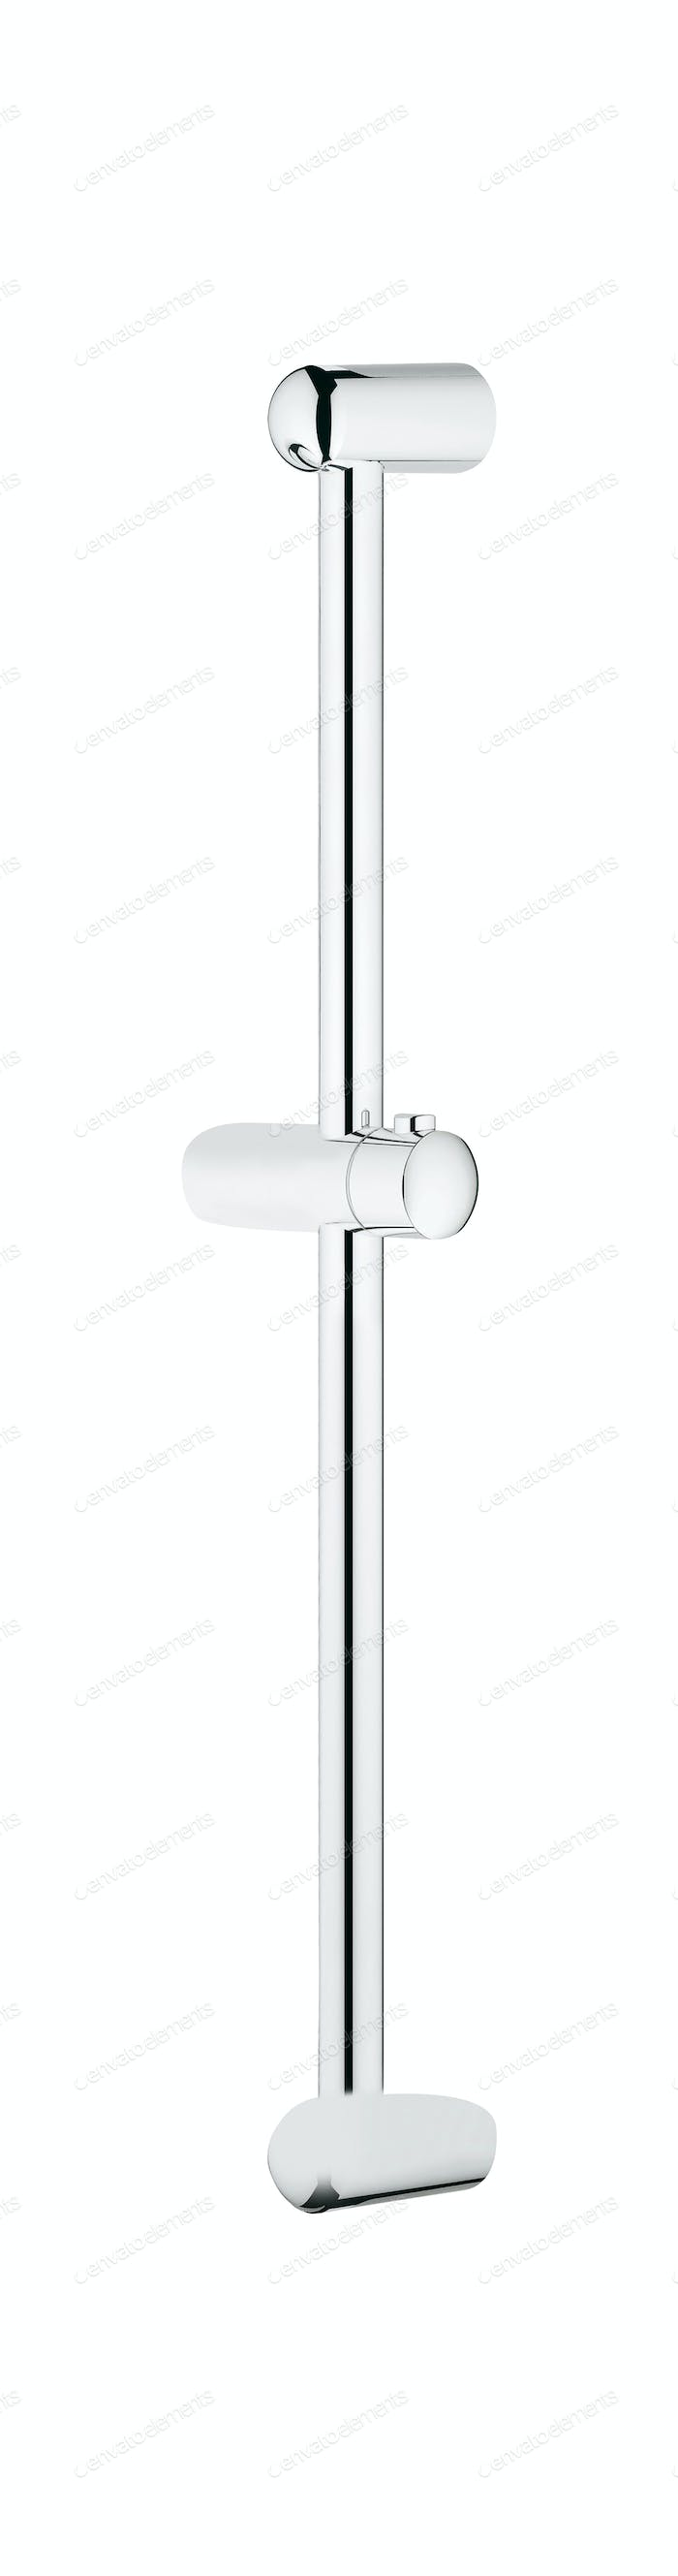 Shower Isolated on White Background